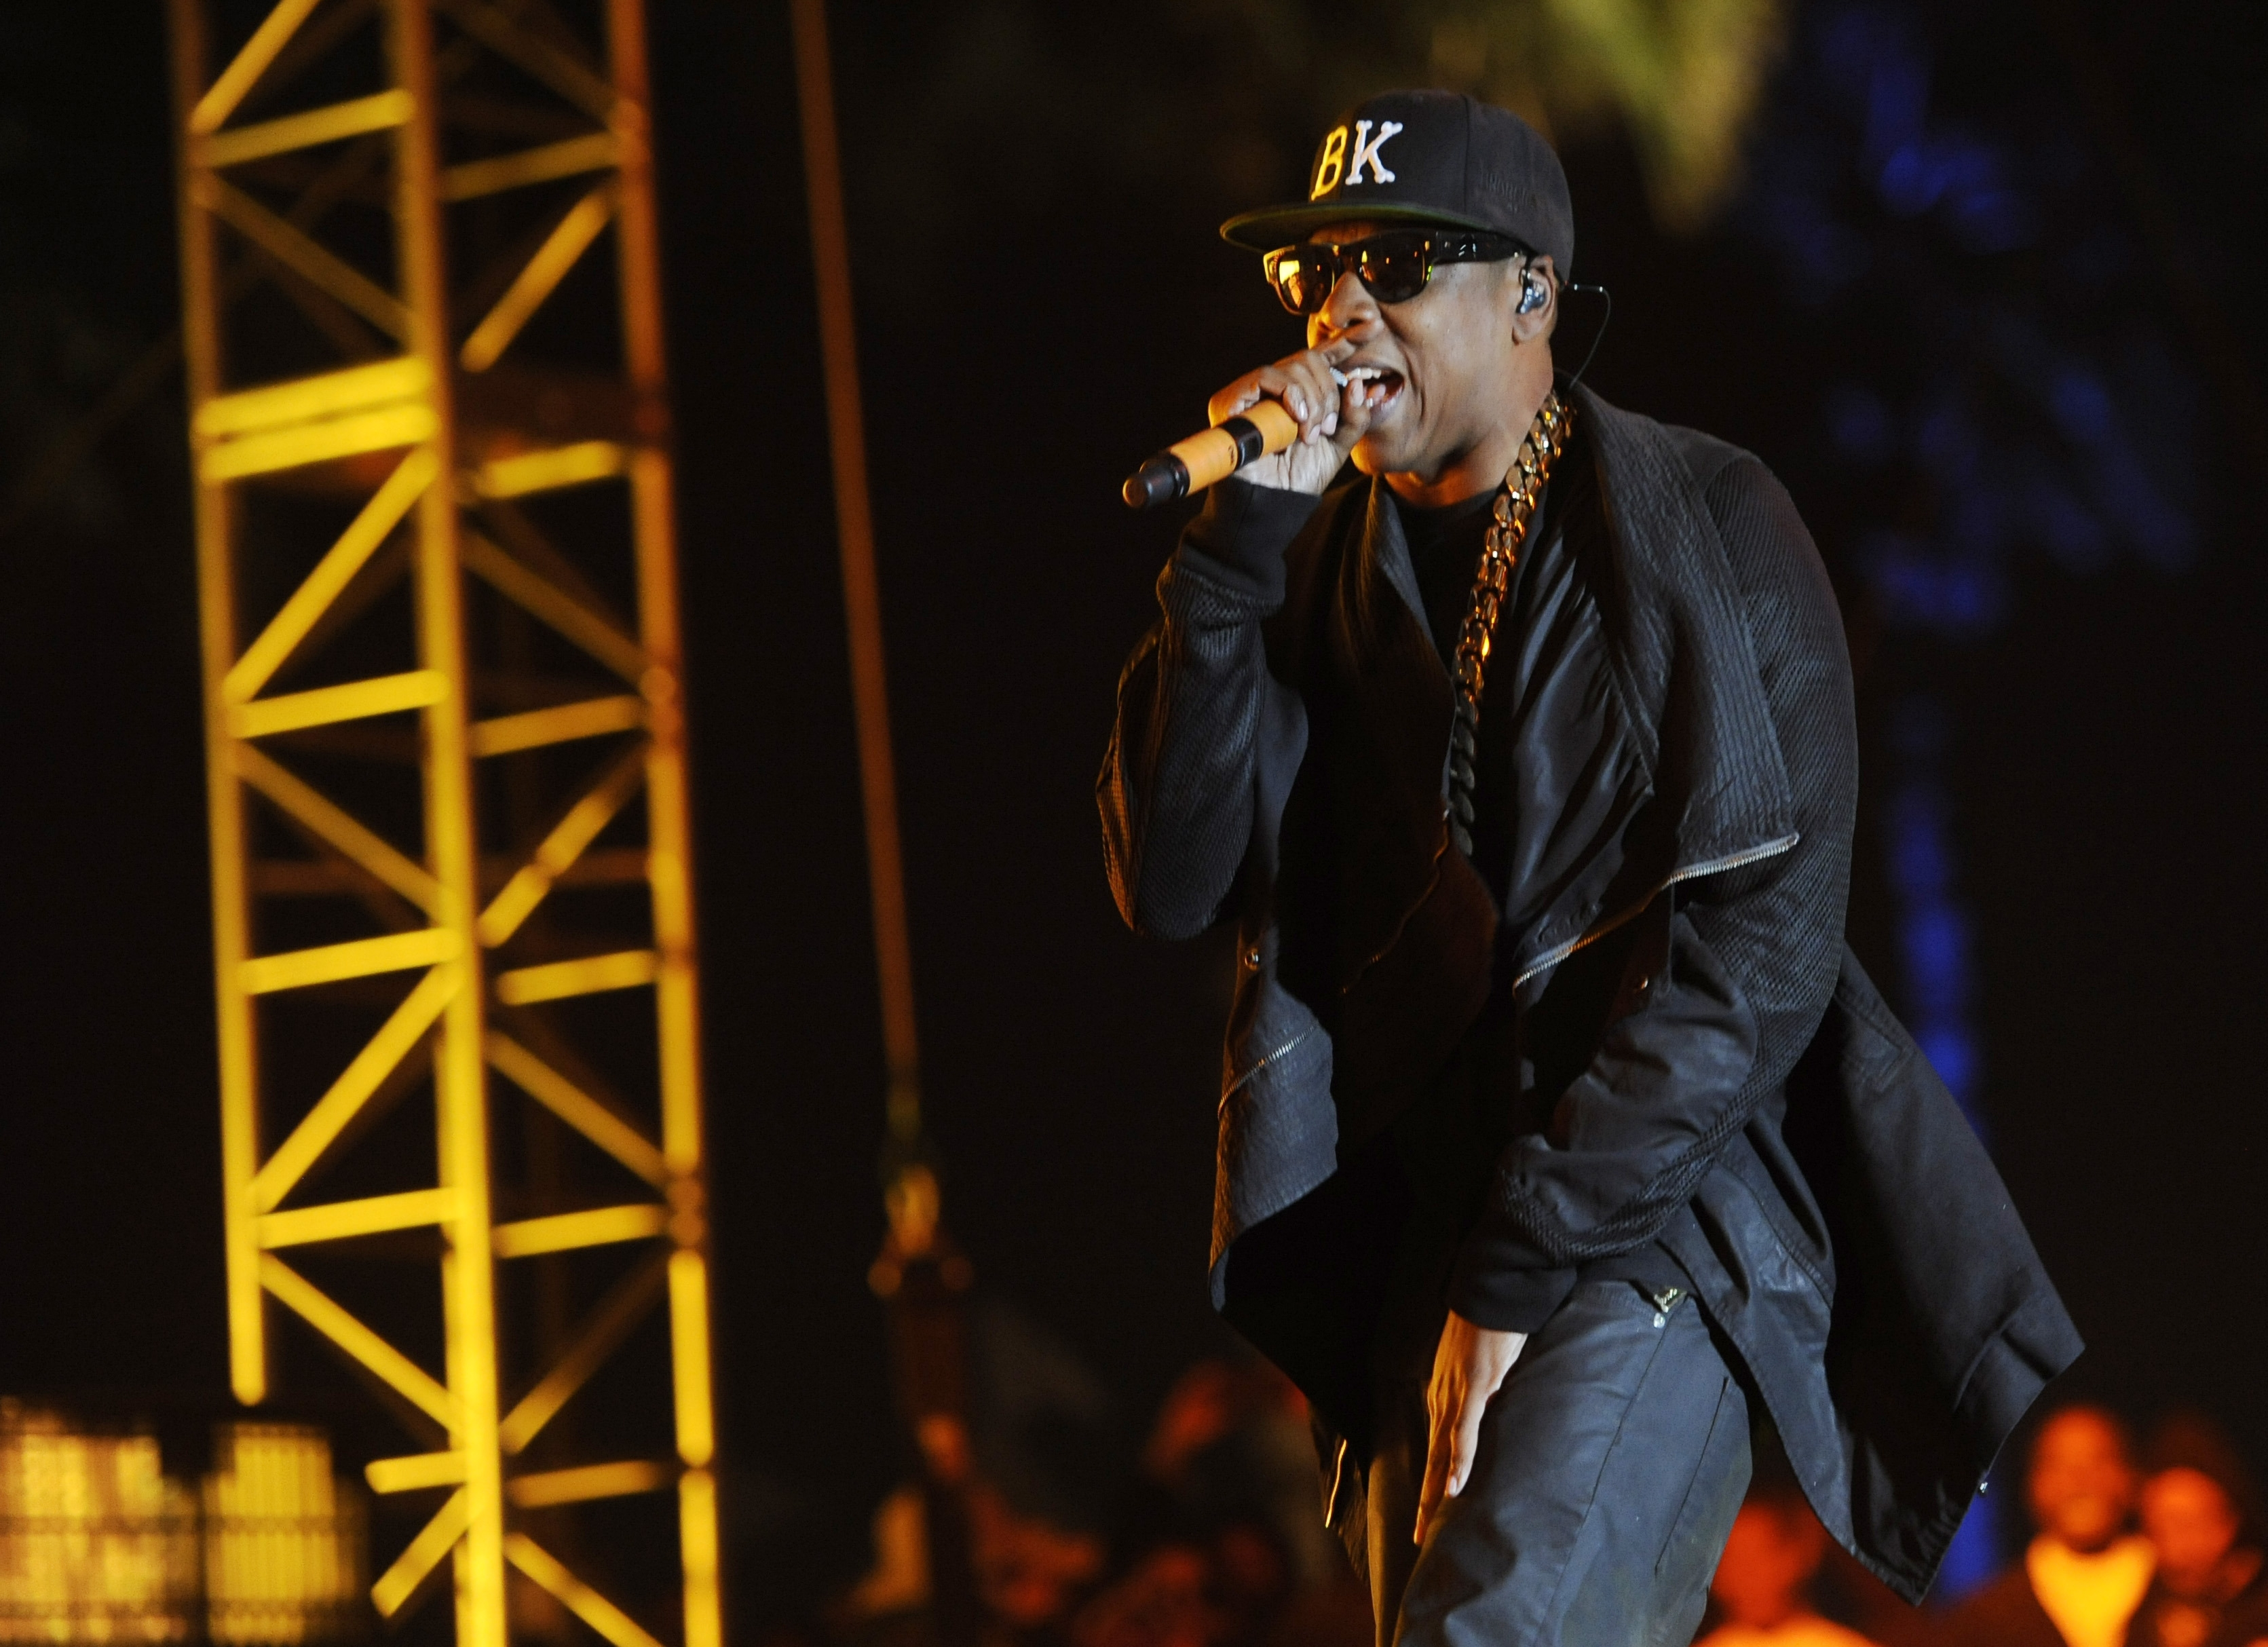 Jay-Z is bringing his Made in America music festival to Los Angeles. The music mogul Wednesday announced the two-day concert, which is planned for Labor Day weekend.